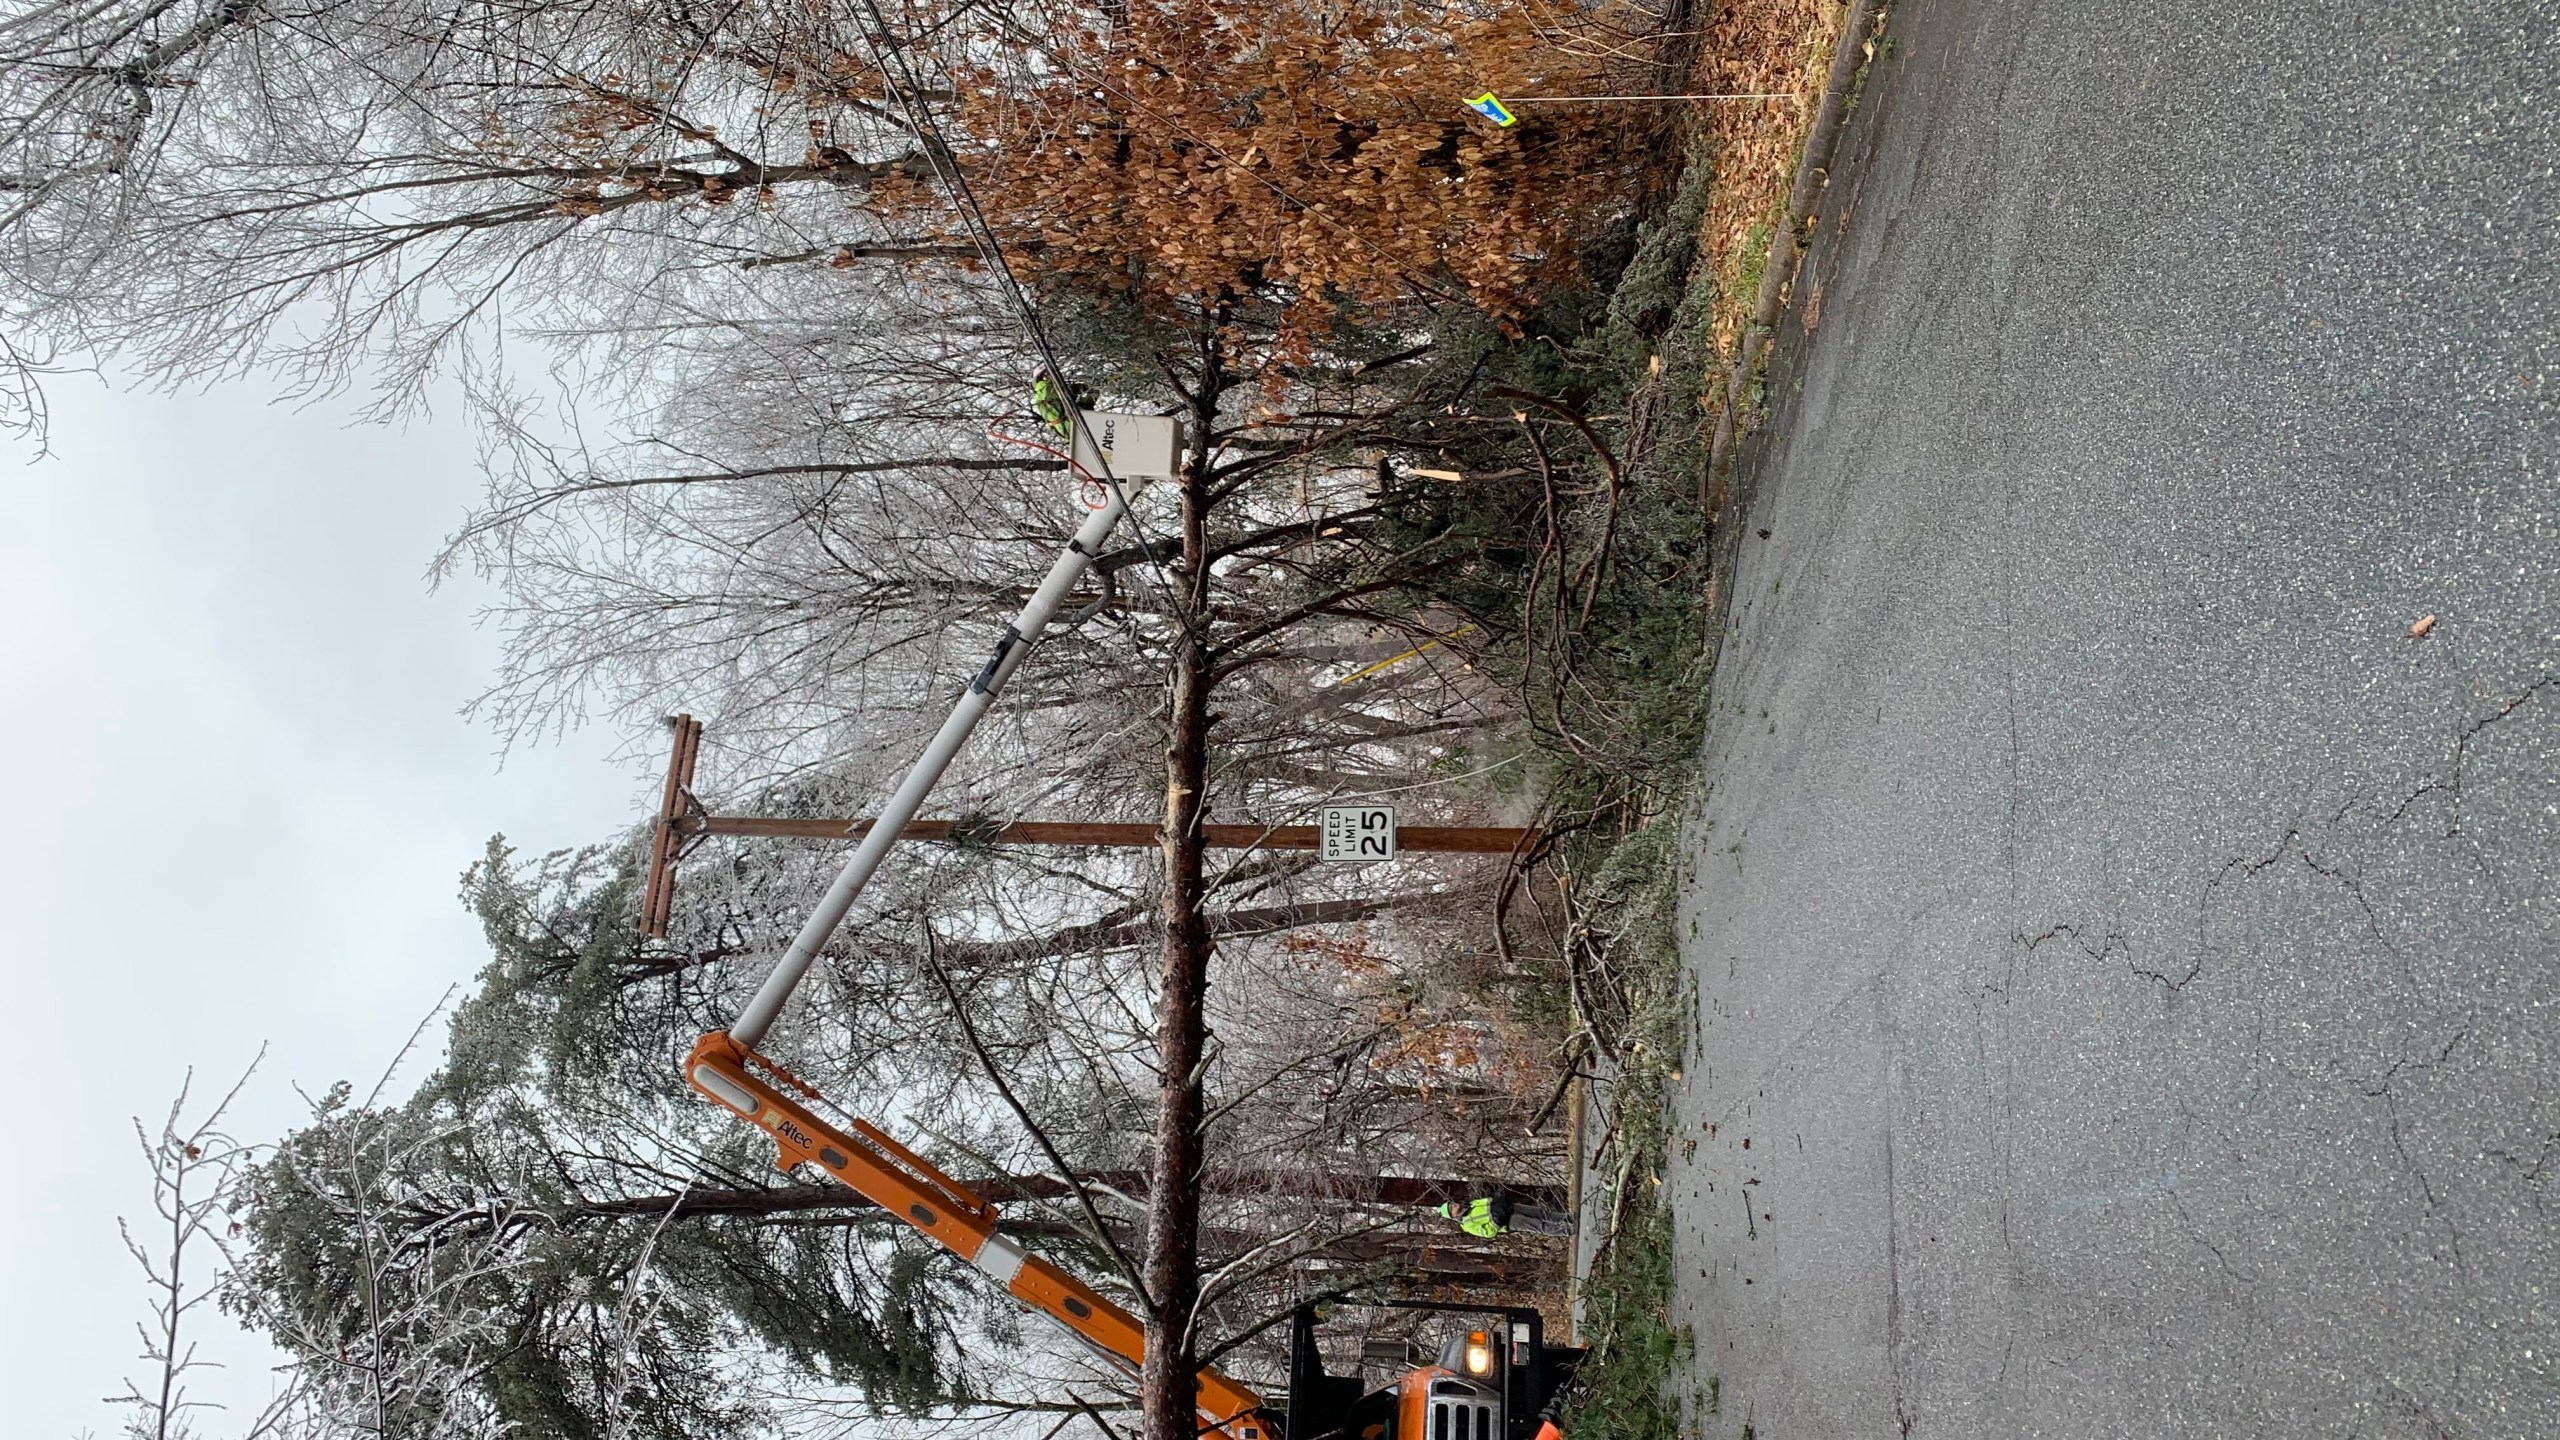 City Of High Point Power Outage : point, power, outage, Public, Power, Receives, Nation, Commendation